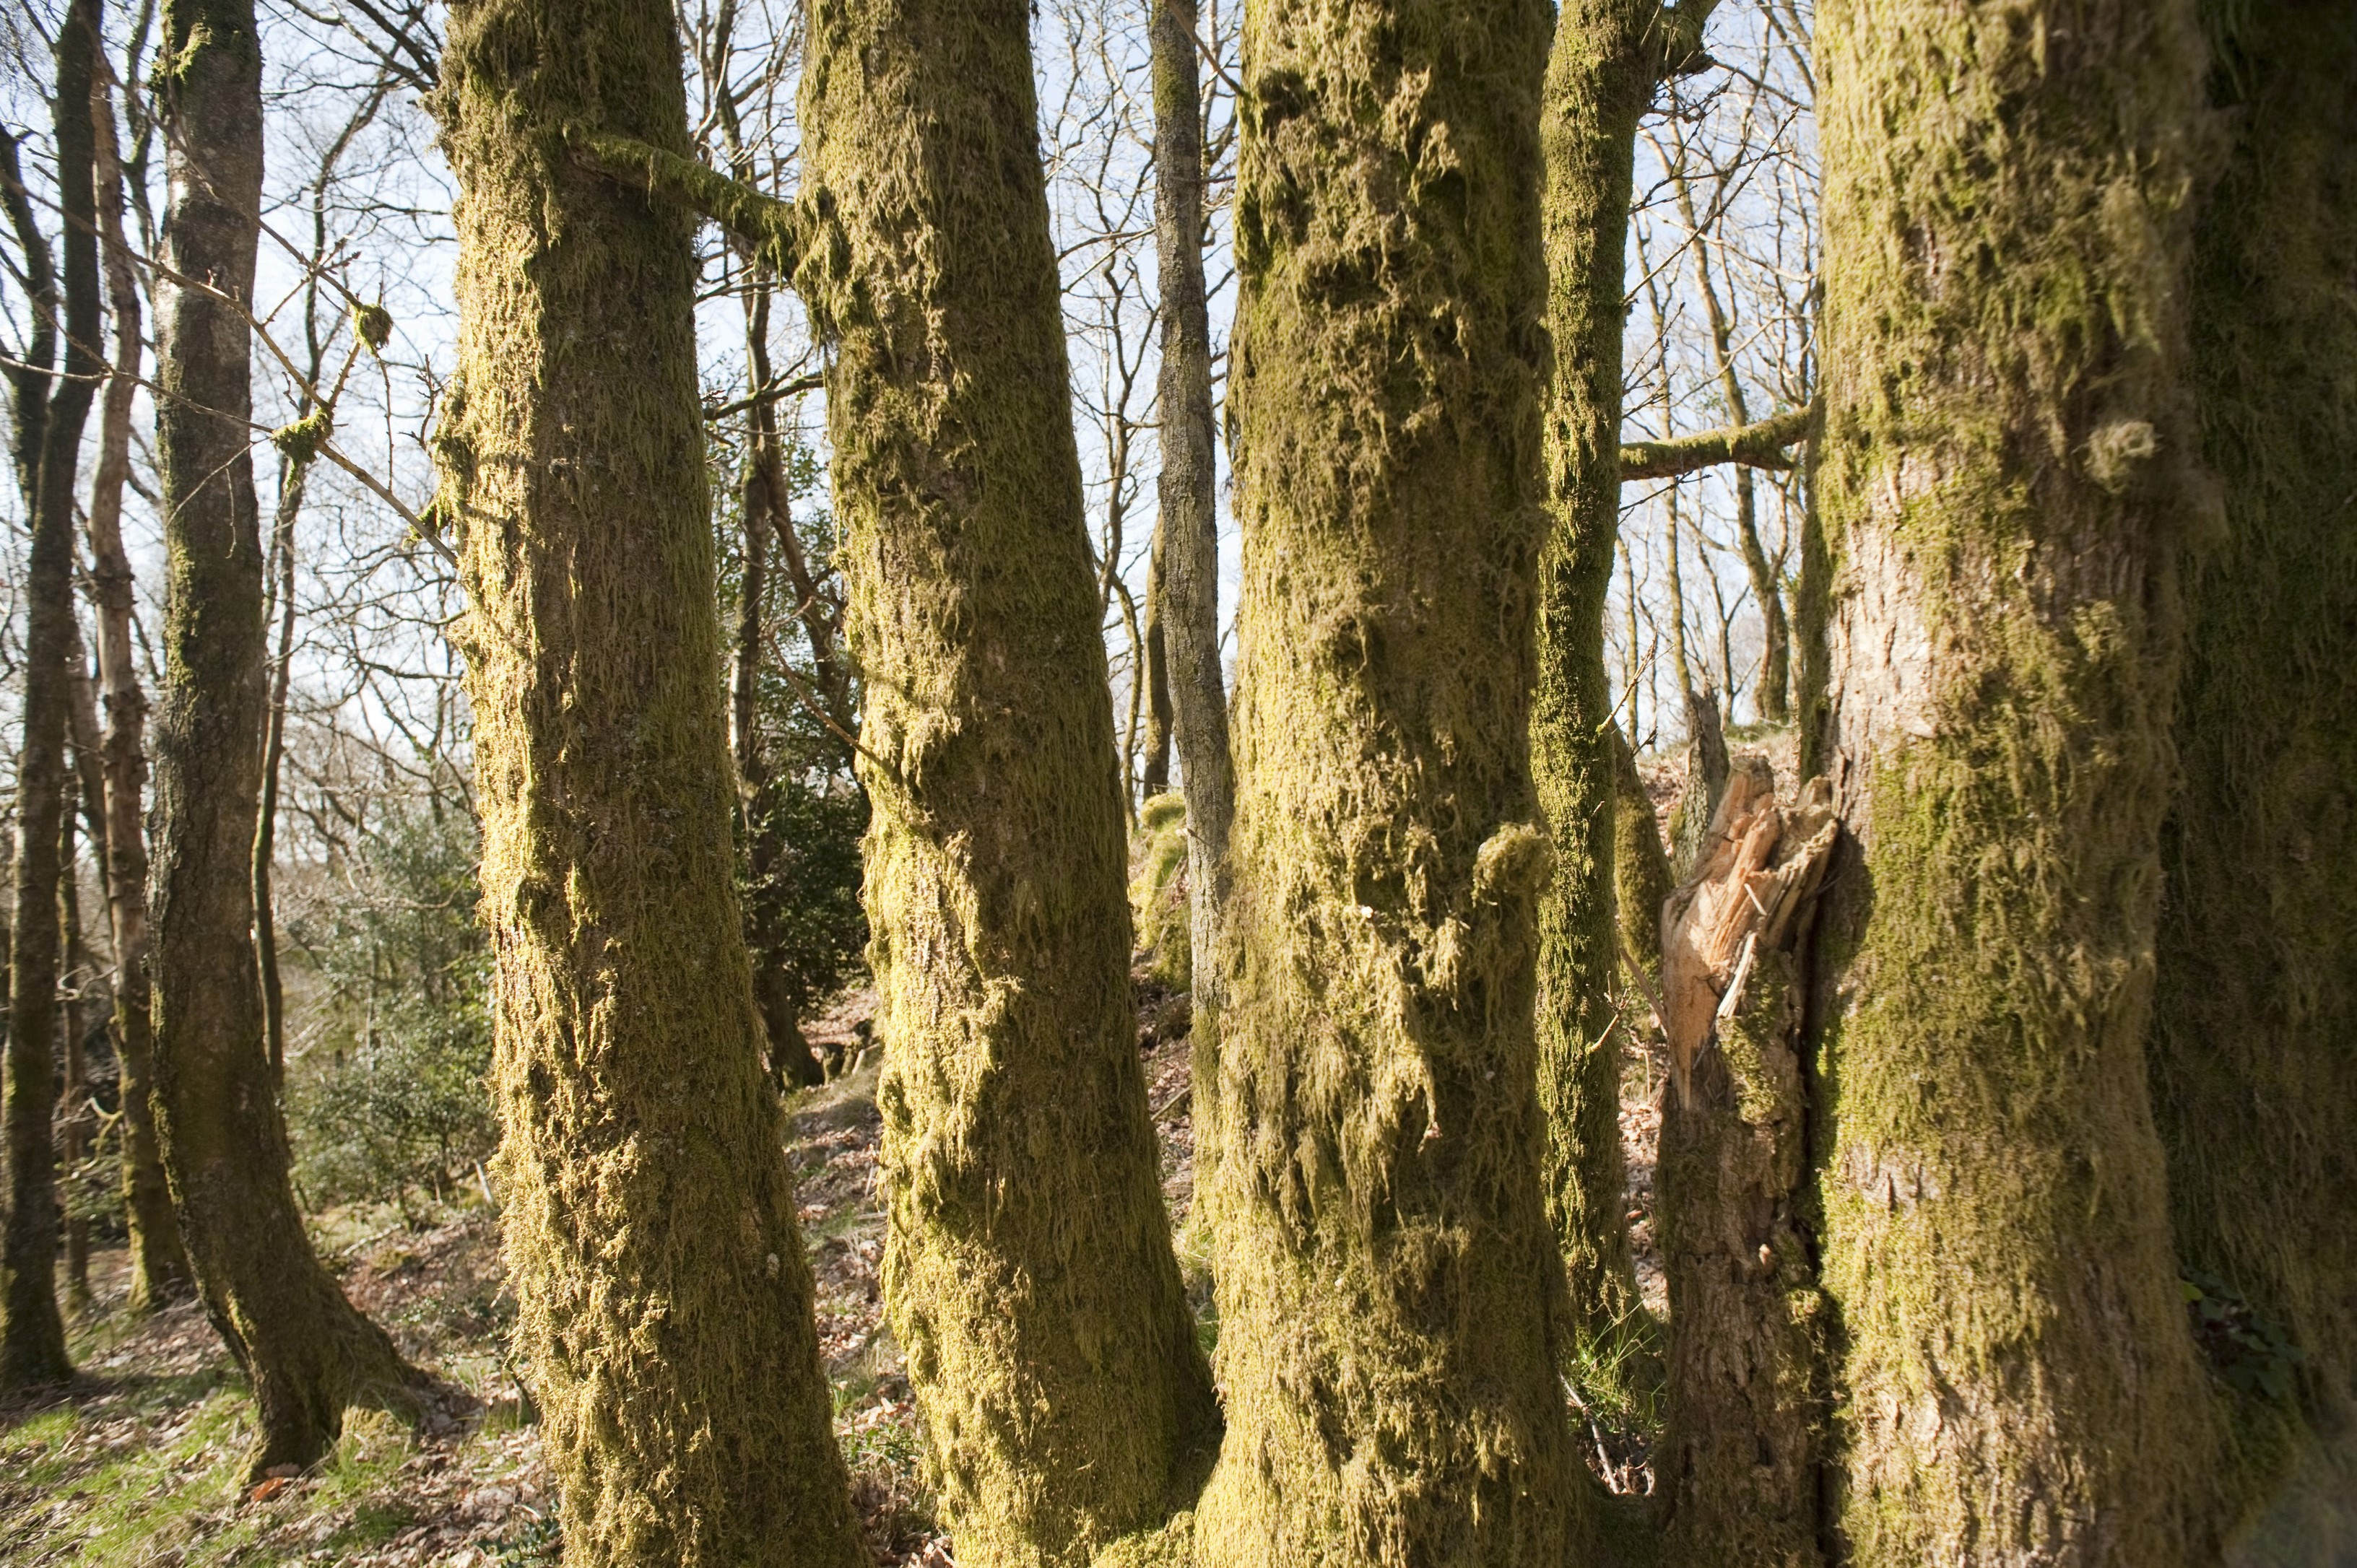 Close up view of a row of tree trunks covered in mossy bark in woodland